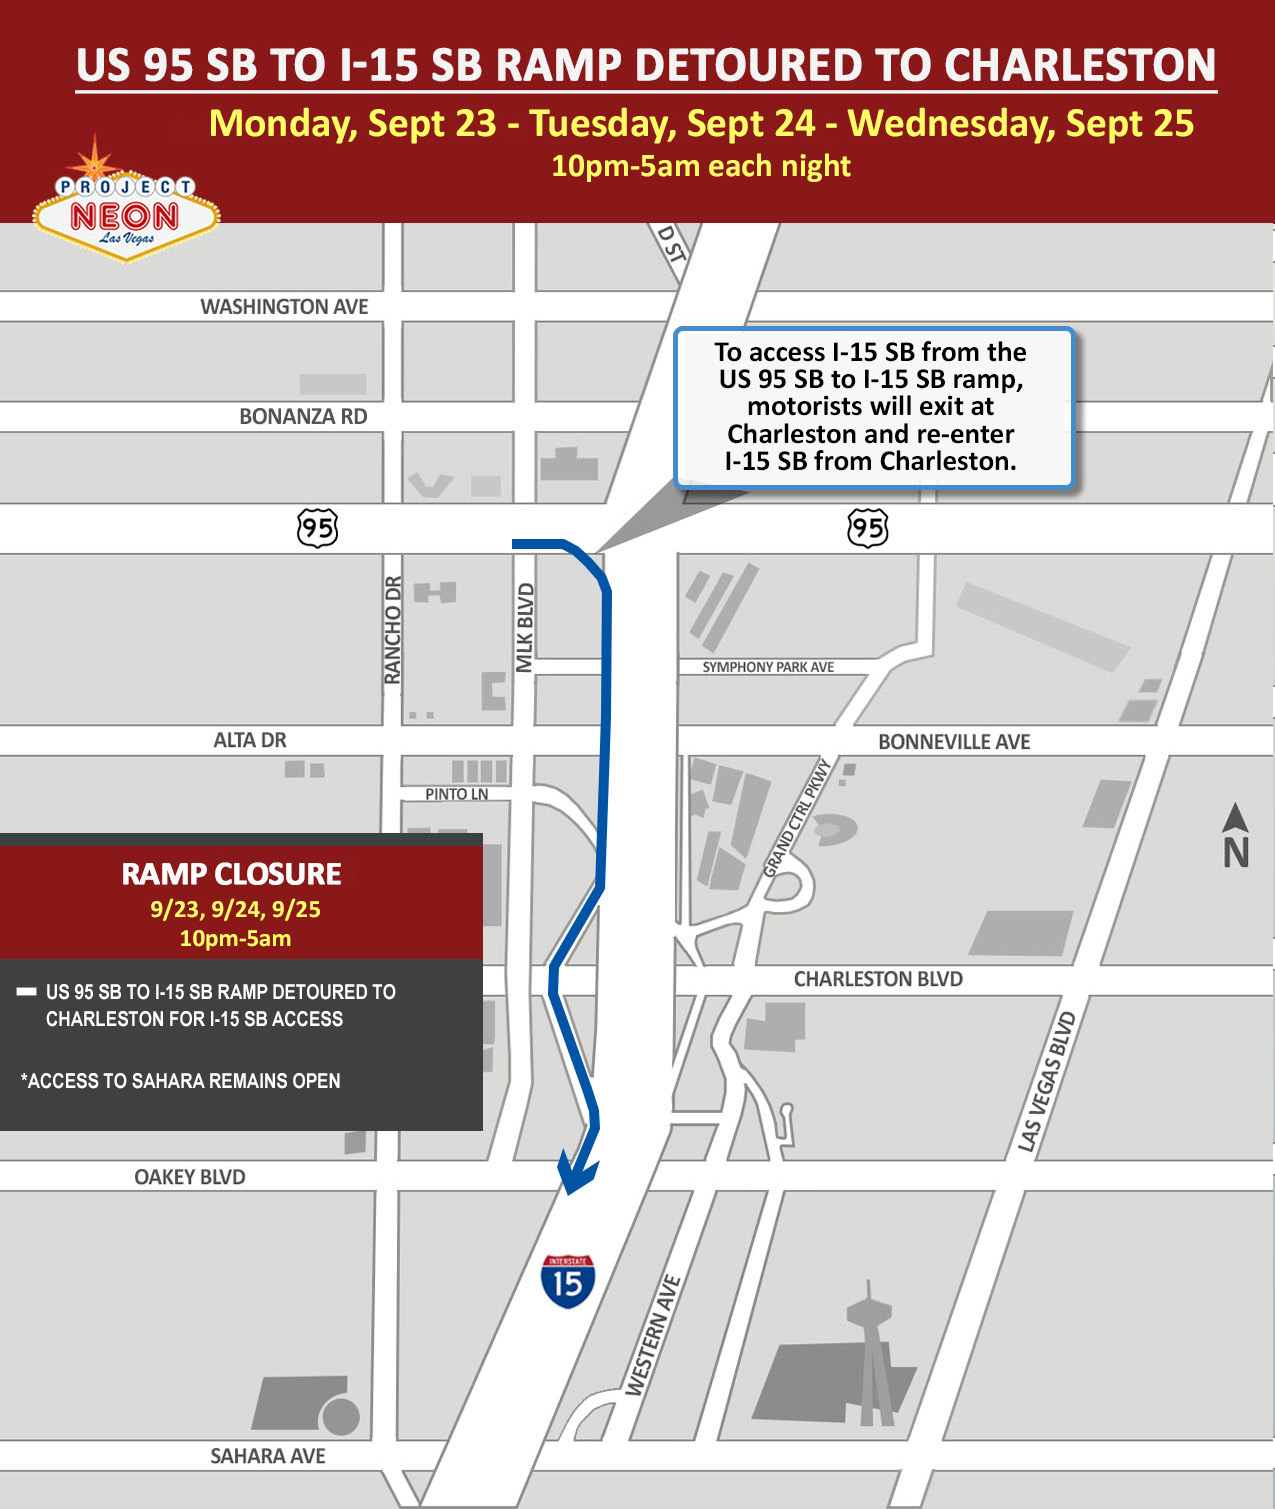 US 95 SB to I-15 SB Ramp Closure_9.23